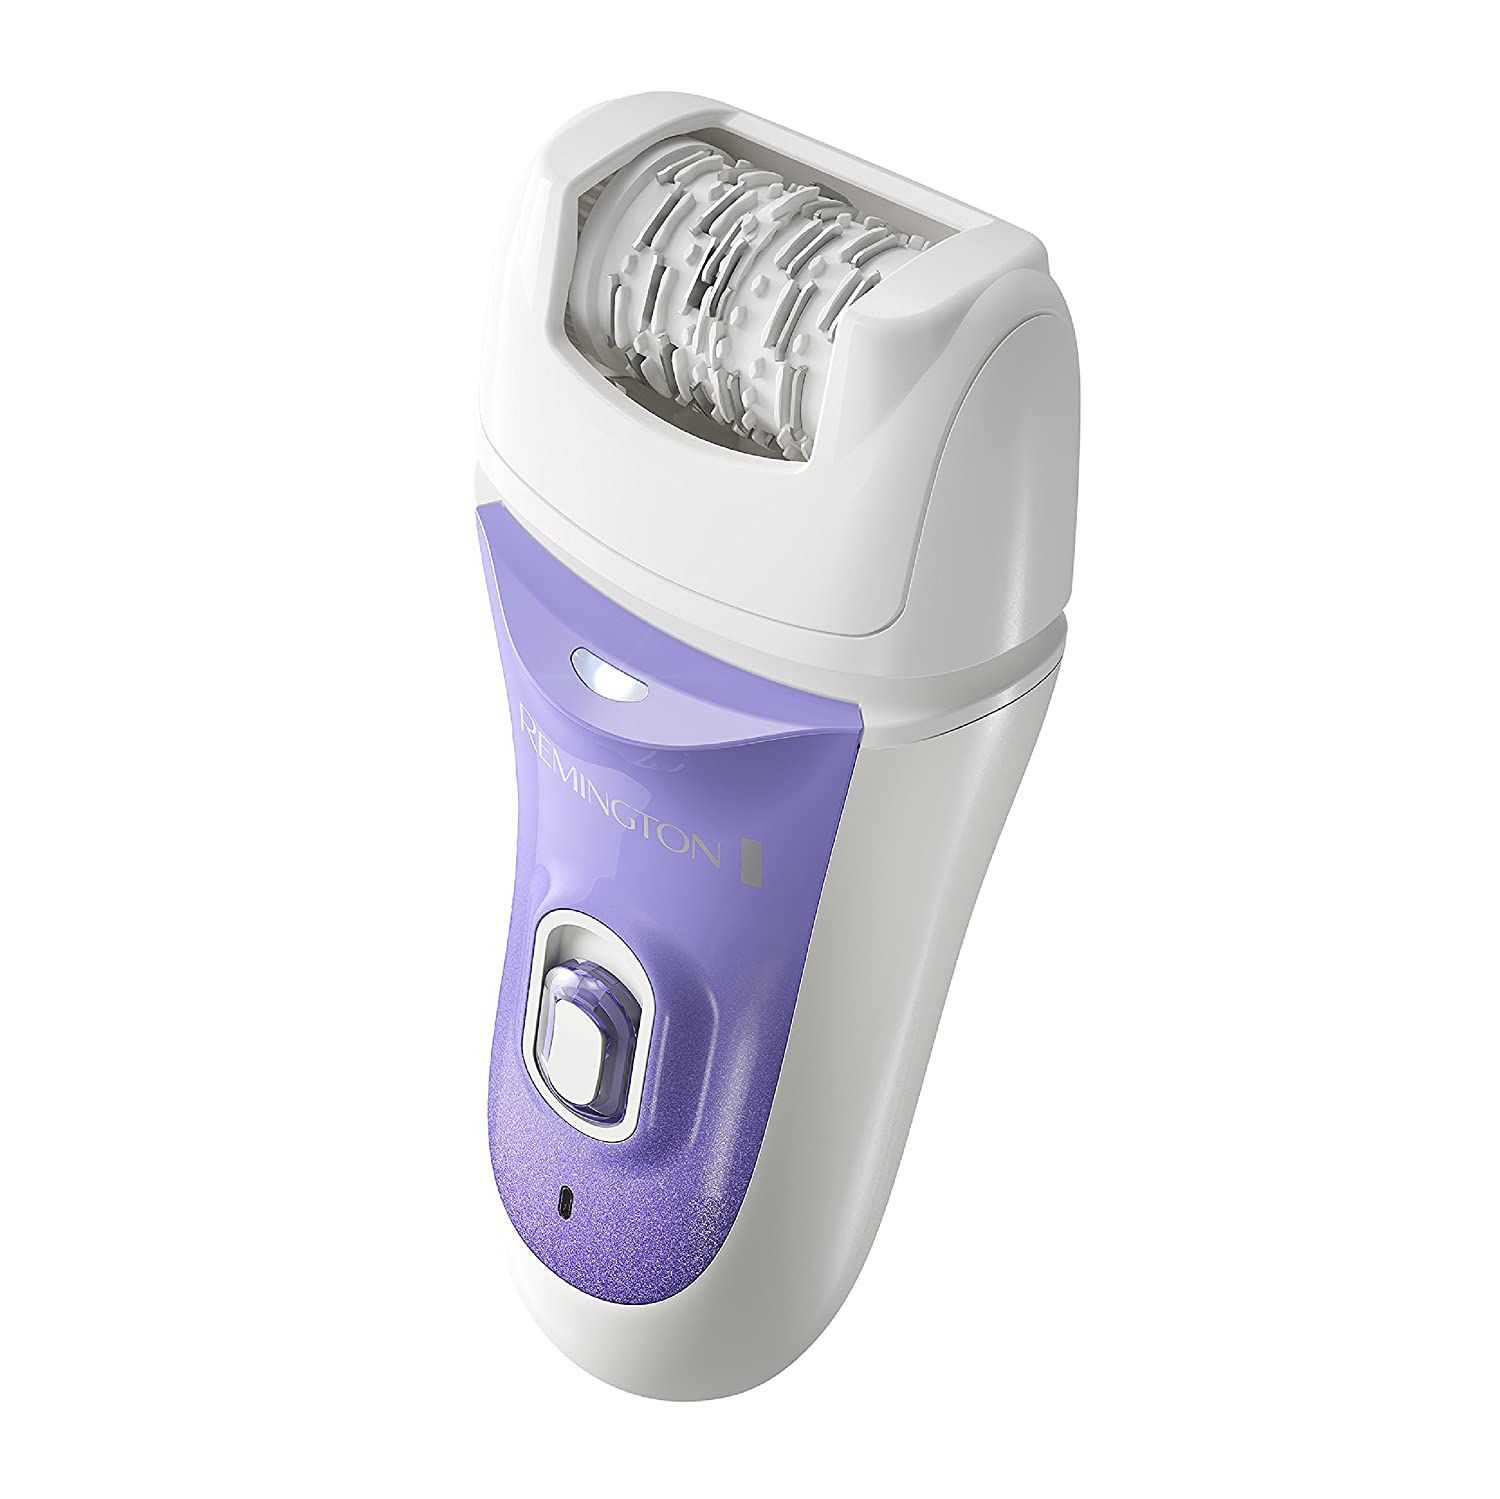 Remington Smooth & Silky Deluxe Rechargeable Epilator